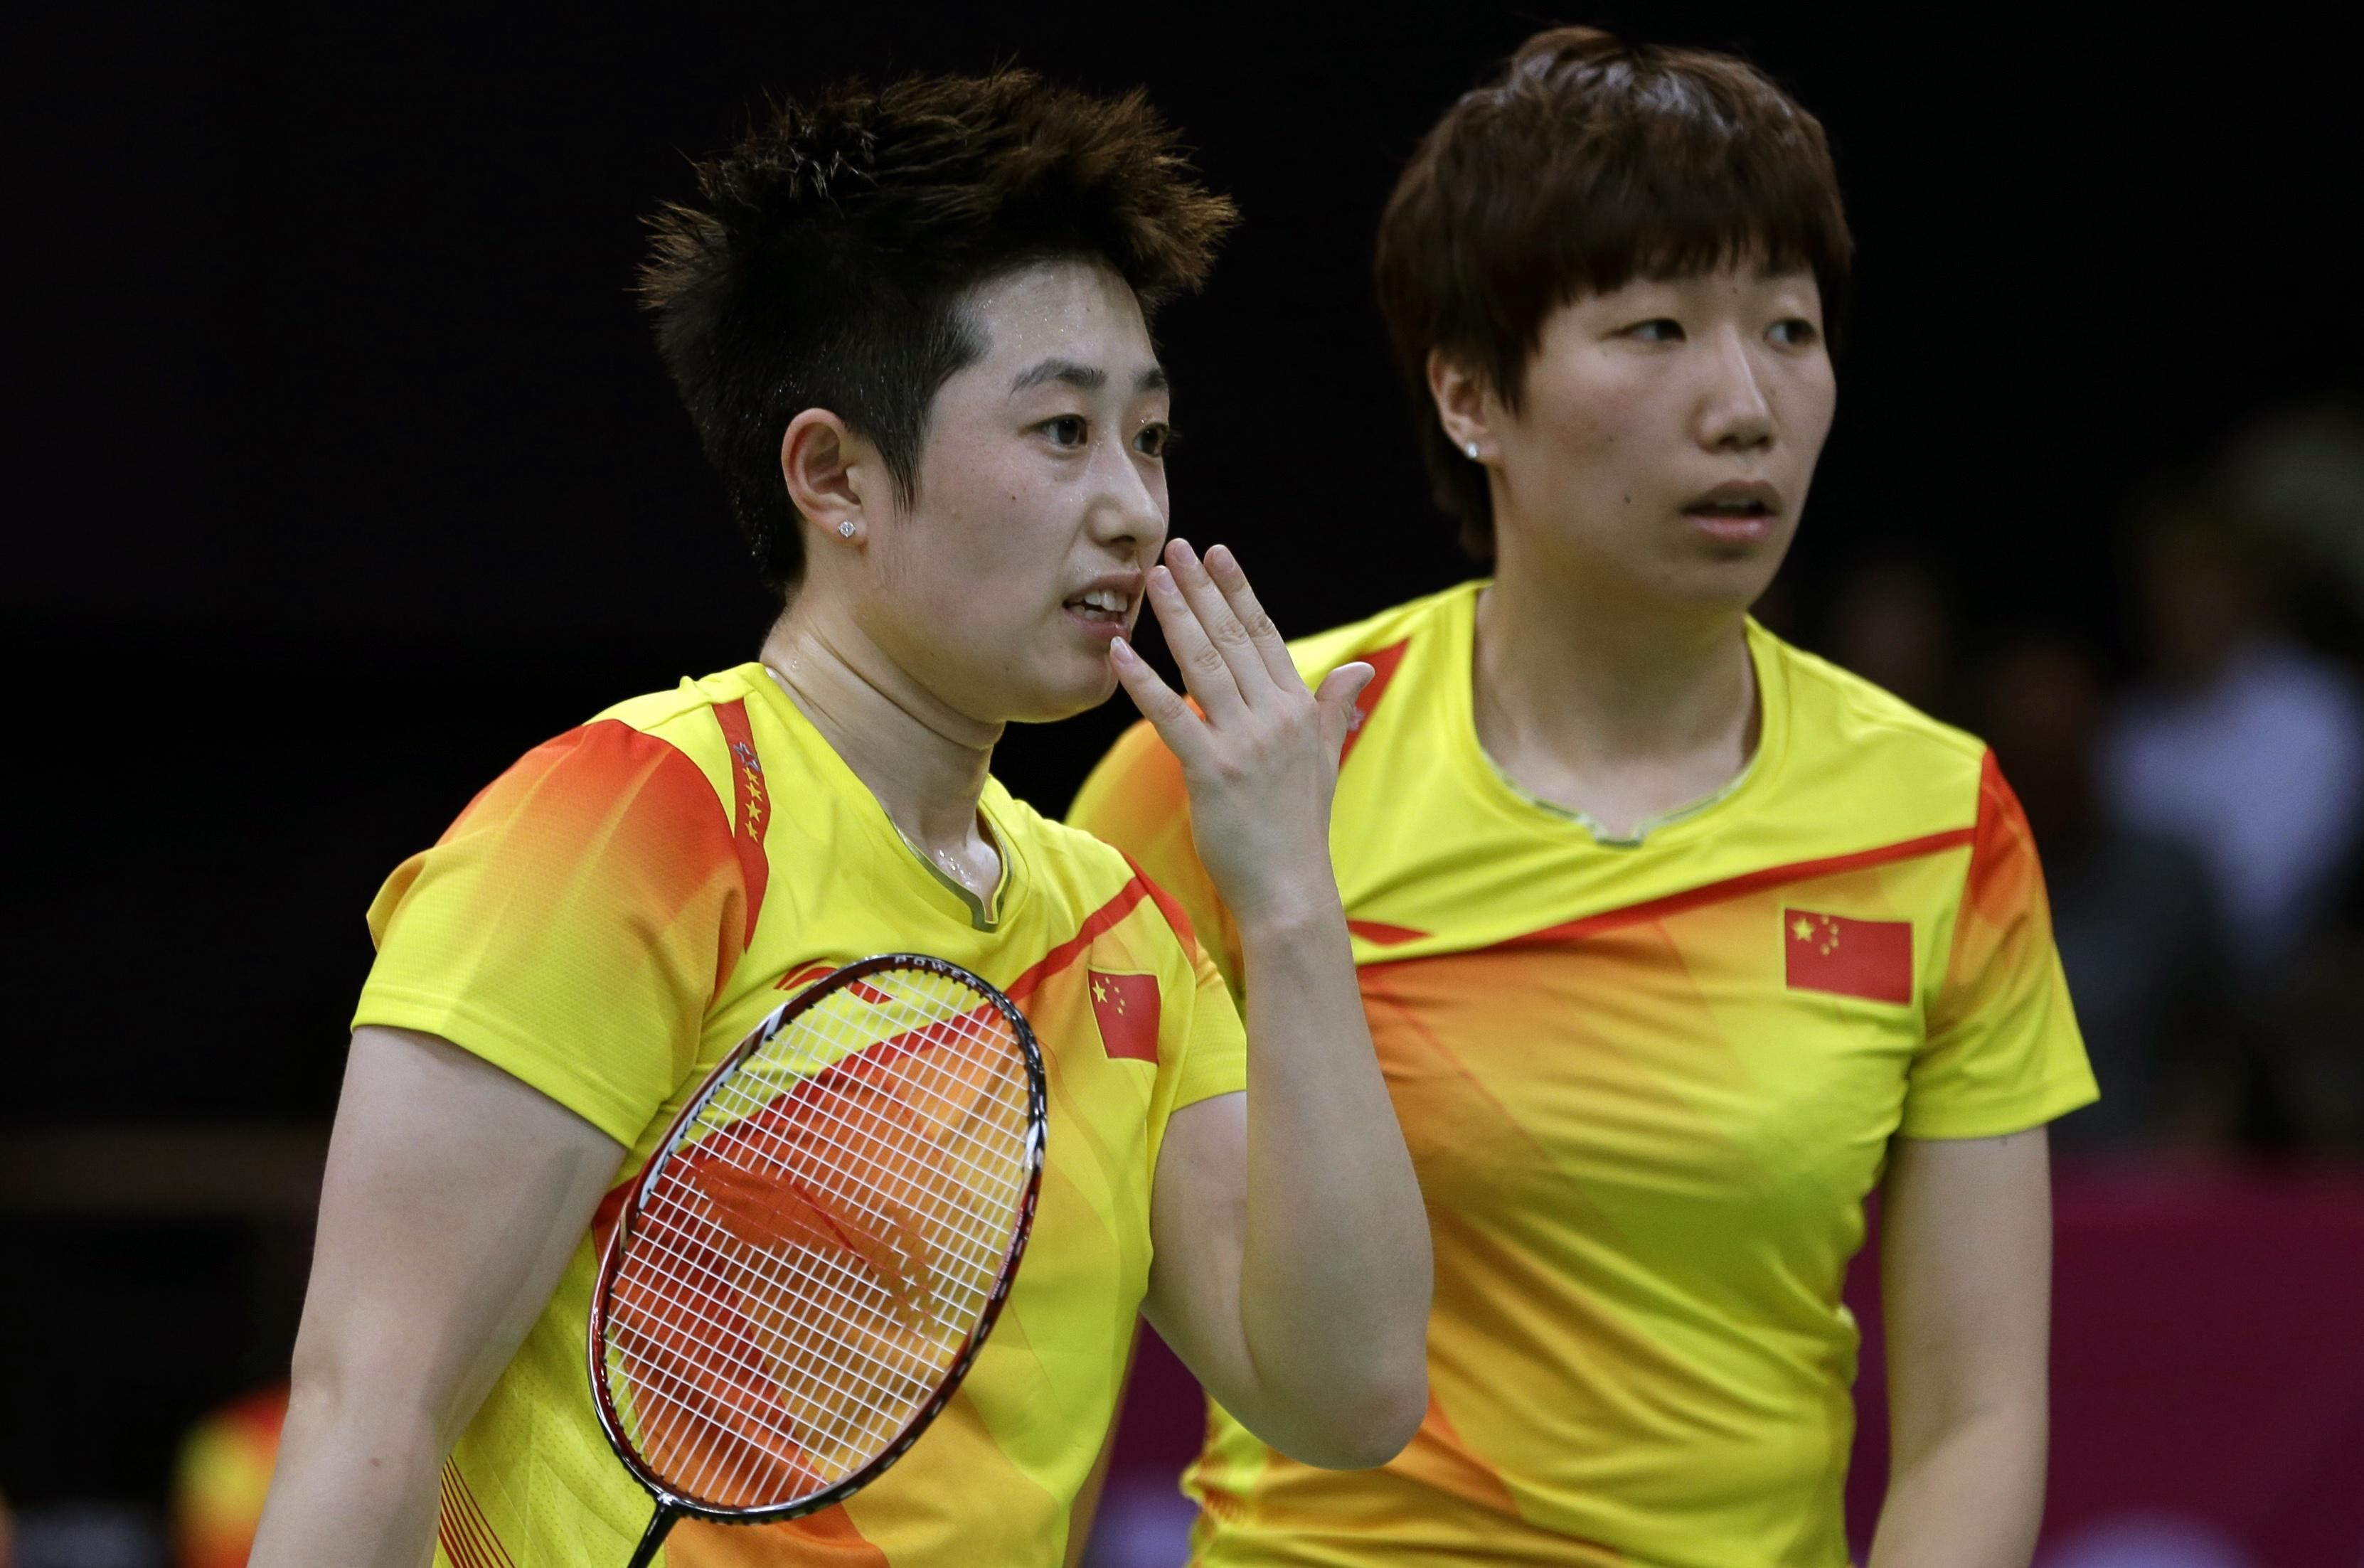 Free Screensaver Wallpapers For Badminton With Images Badminton Screen Savers Image